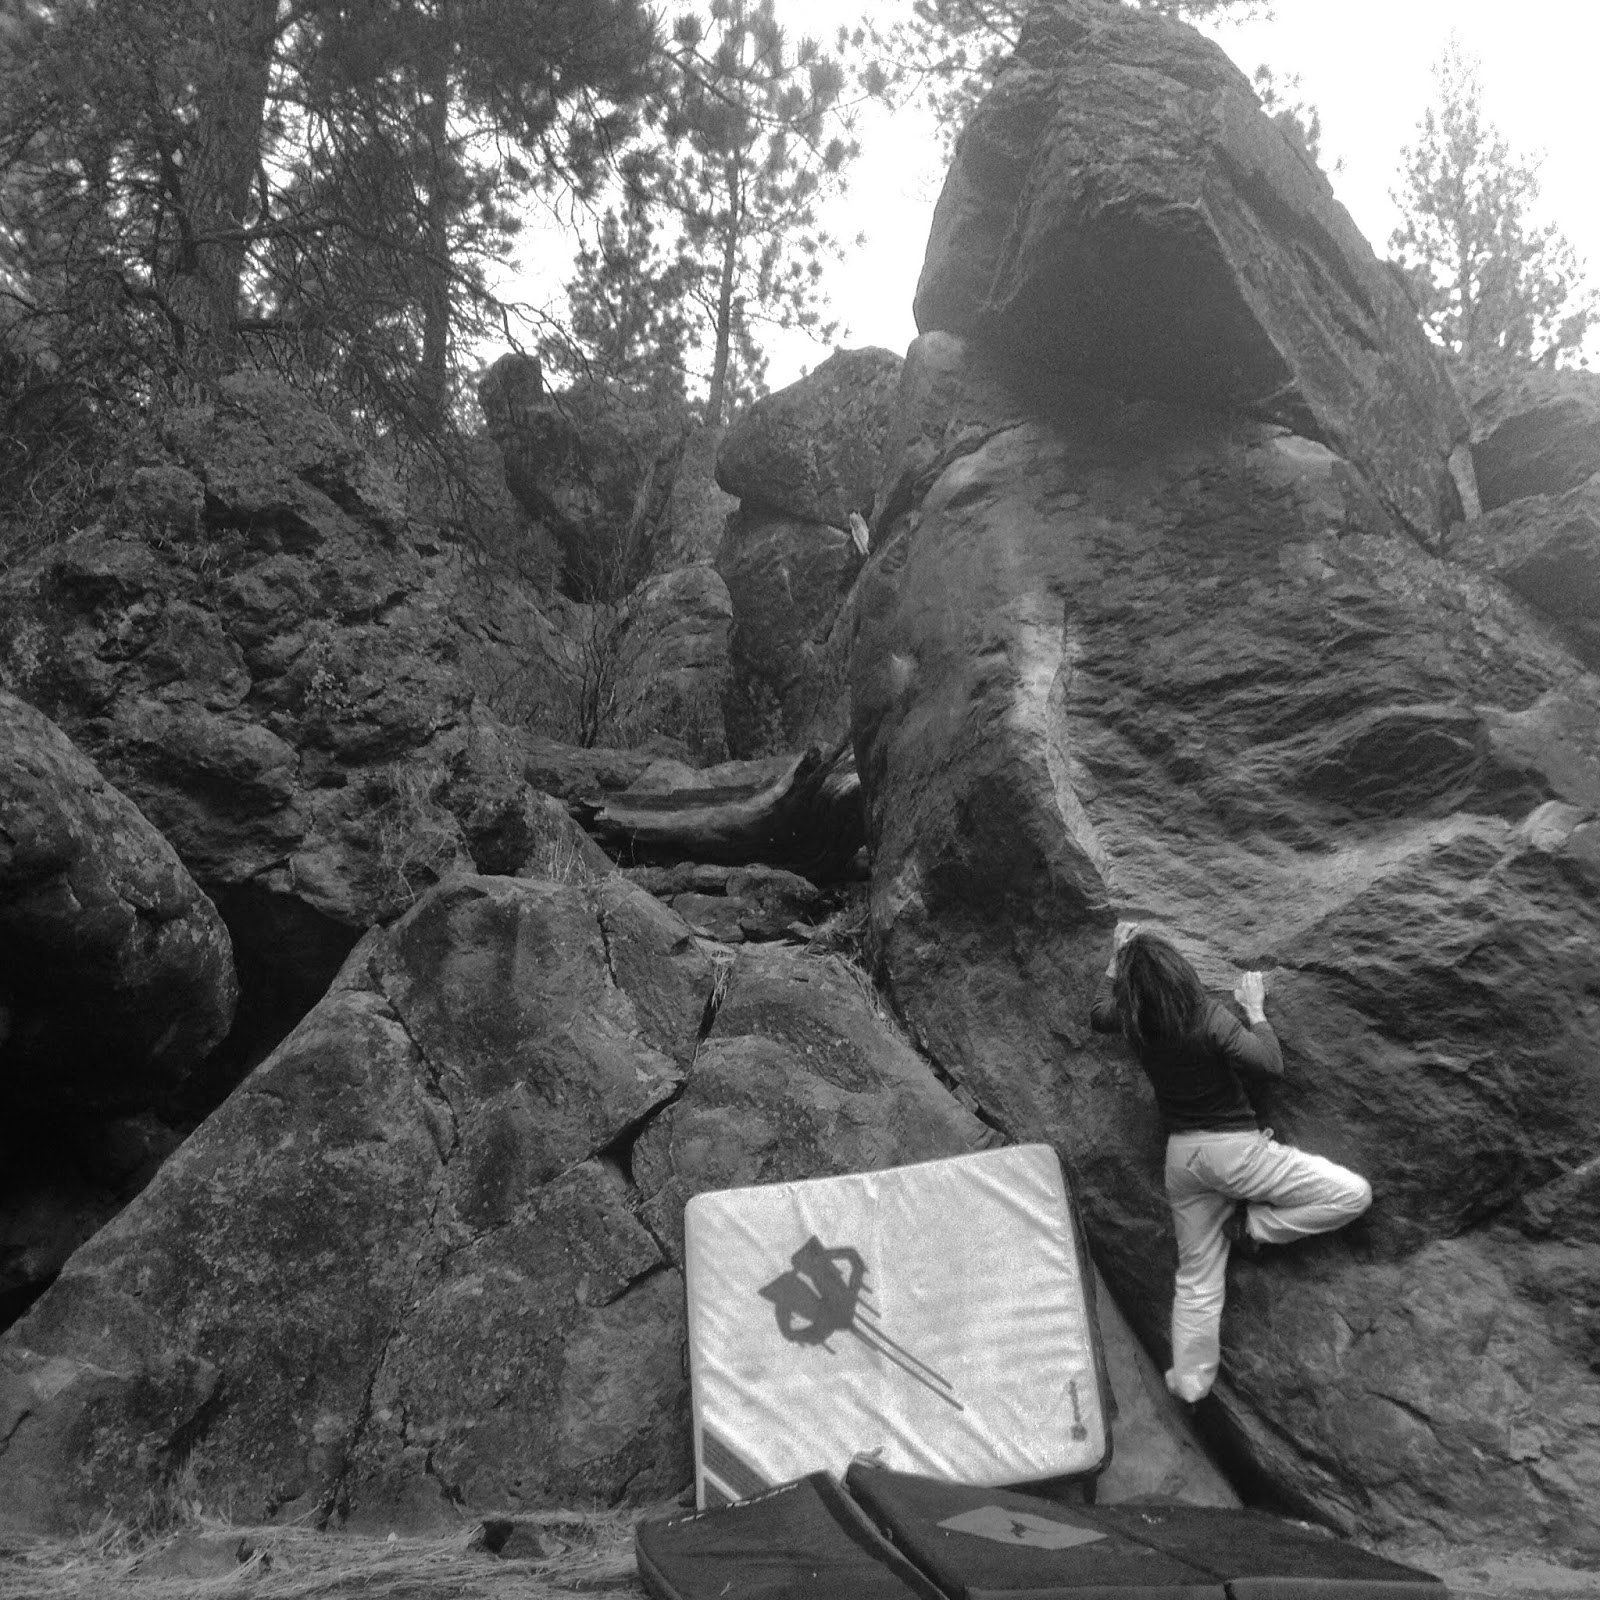 www.boulderingonline.pl Rock climbing and bouldering pictures and news Sending Sisters: Samantha Caligiuri